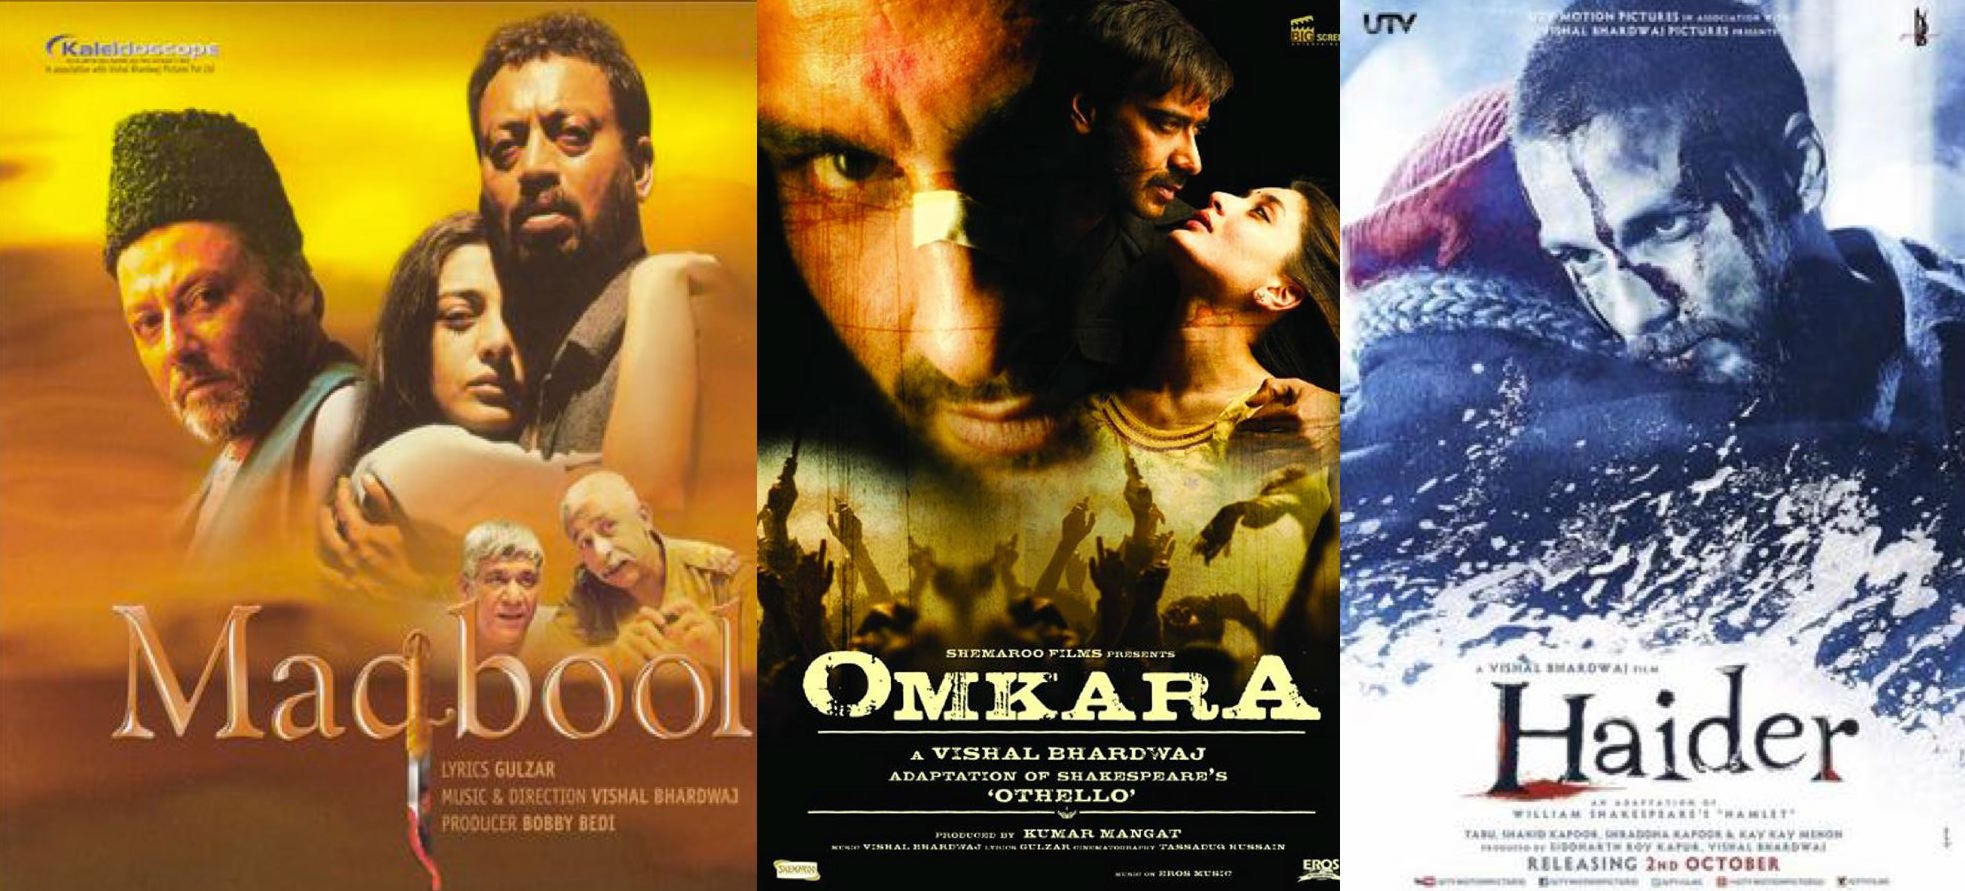 Omkara: Swinging Between Two Faces